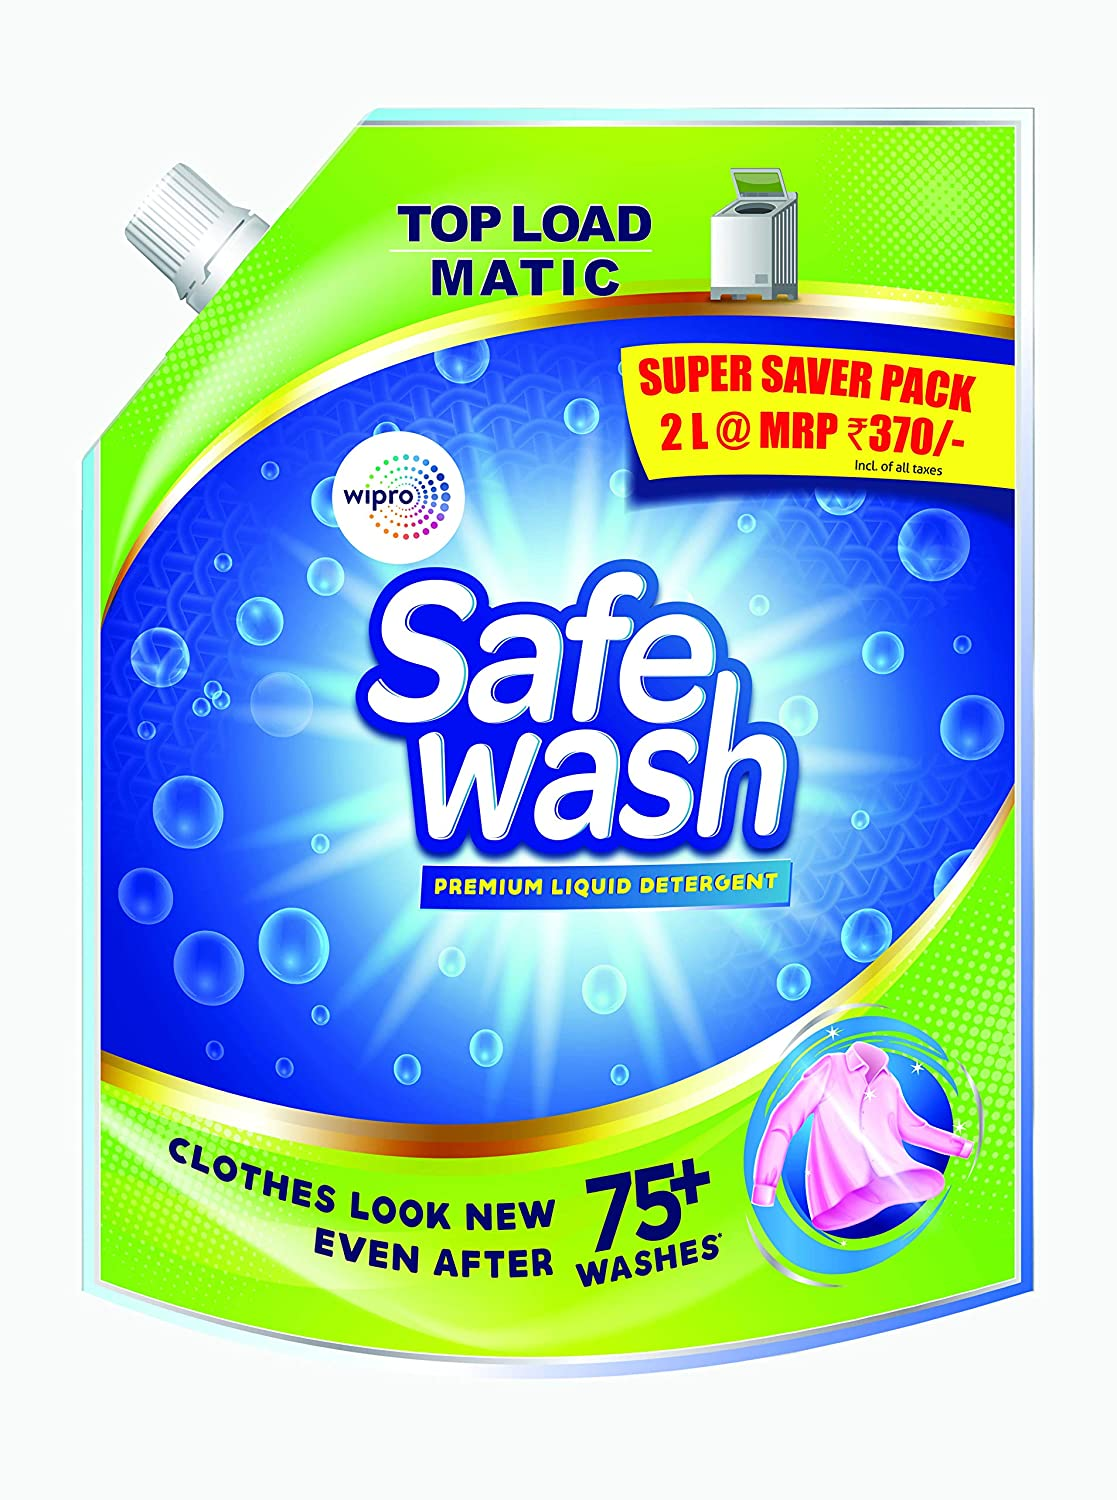 Safewash Matic Top Load Liquid Detergent by Wipro, 2L